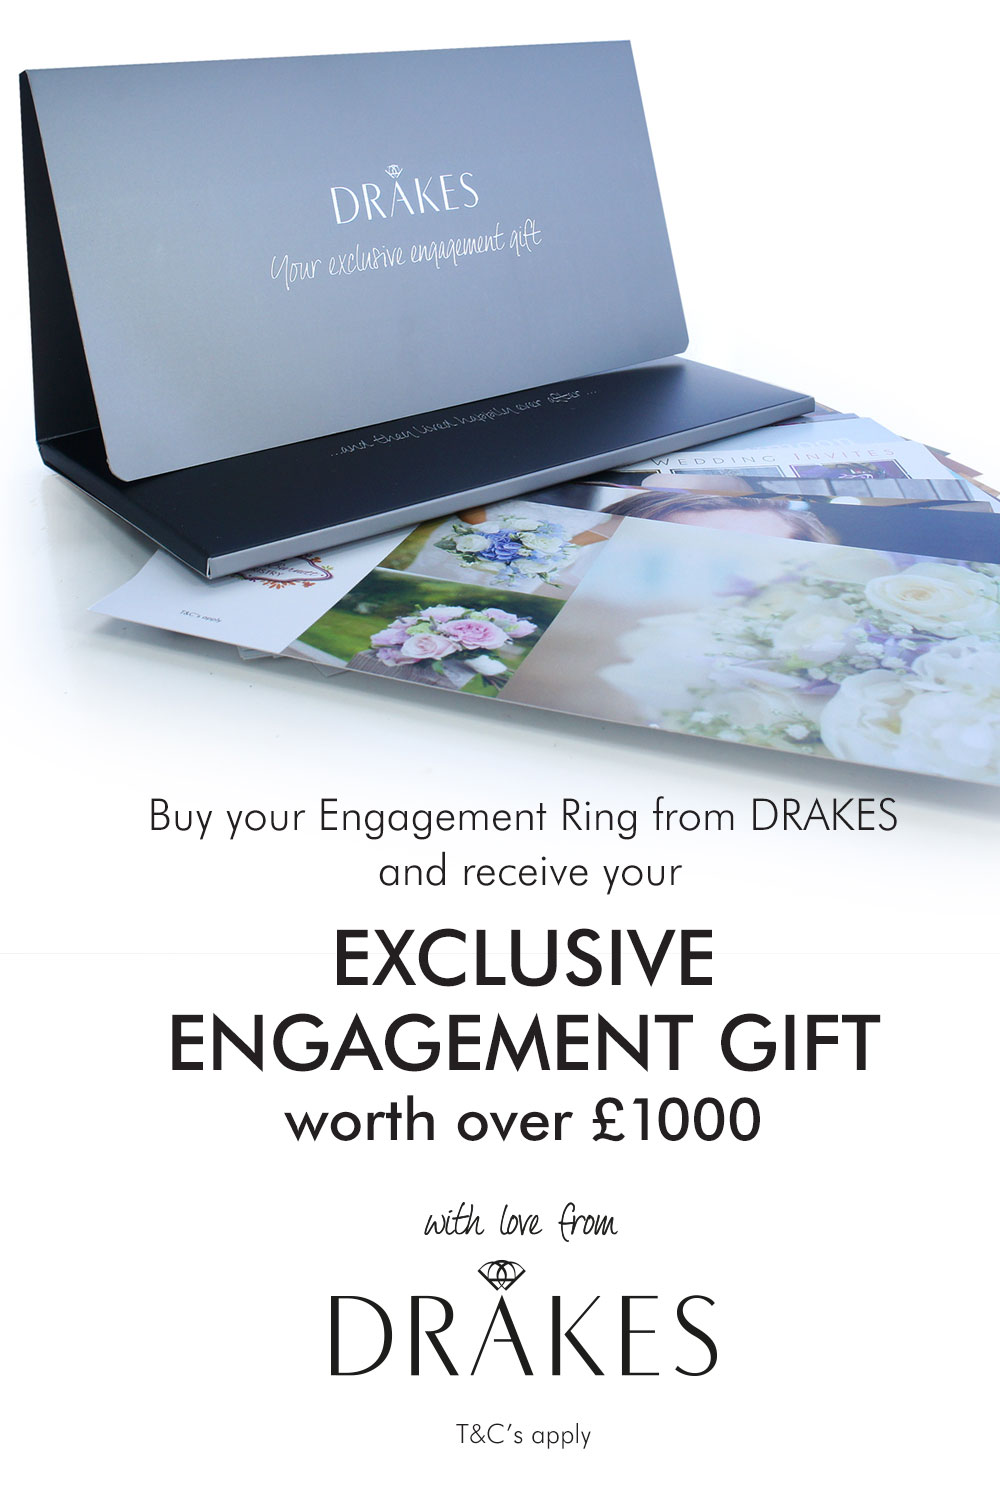 Drakes Jewellers Plymouth, Drakes Jewelles, Plymouth, Love, Wedding, Proposal, Engagement, Engagement Gift Pack